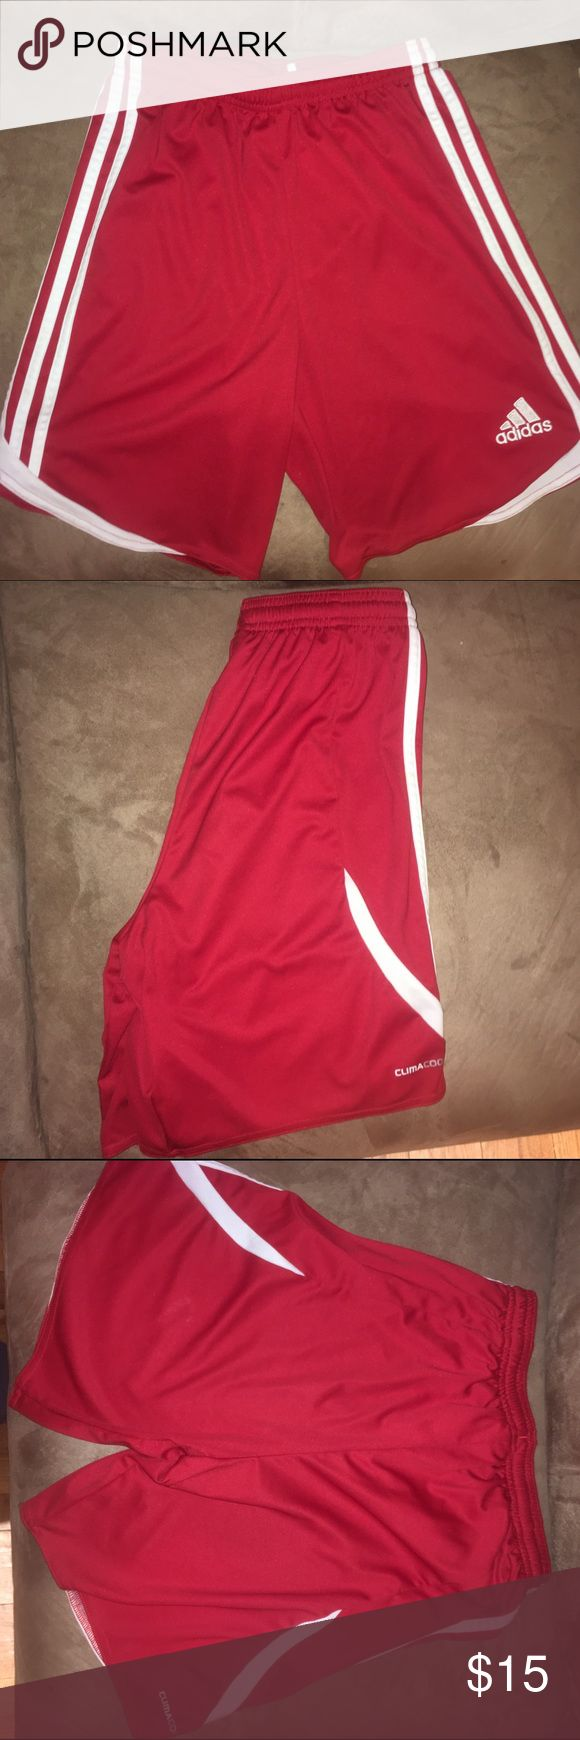 Adidas Soccer Shorts Red Addidas Soccer shorts with white stripes, clean, no stains, comfortable, smoke free, ask all questions! Size: Large in kids, would fit a women's small Adidas Bottoms Shorts